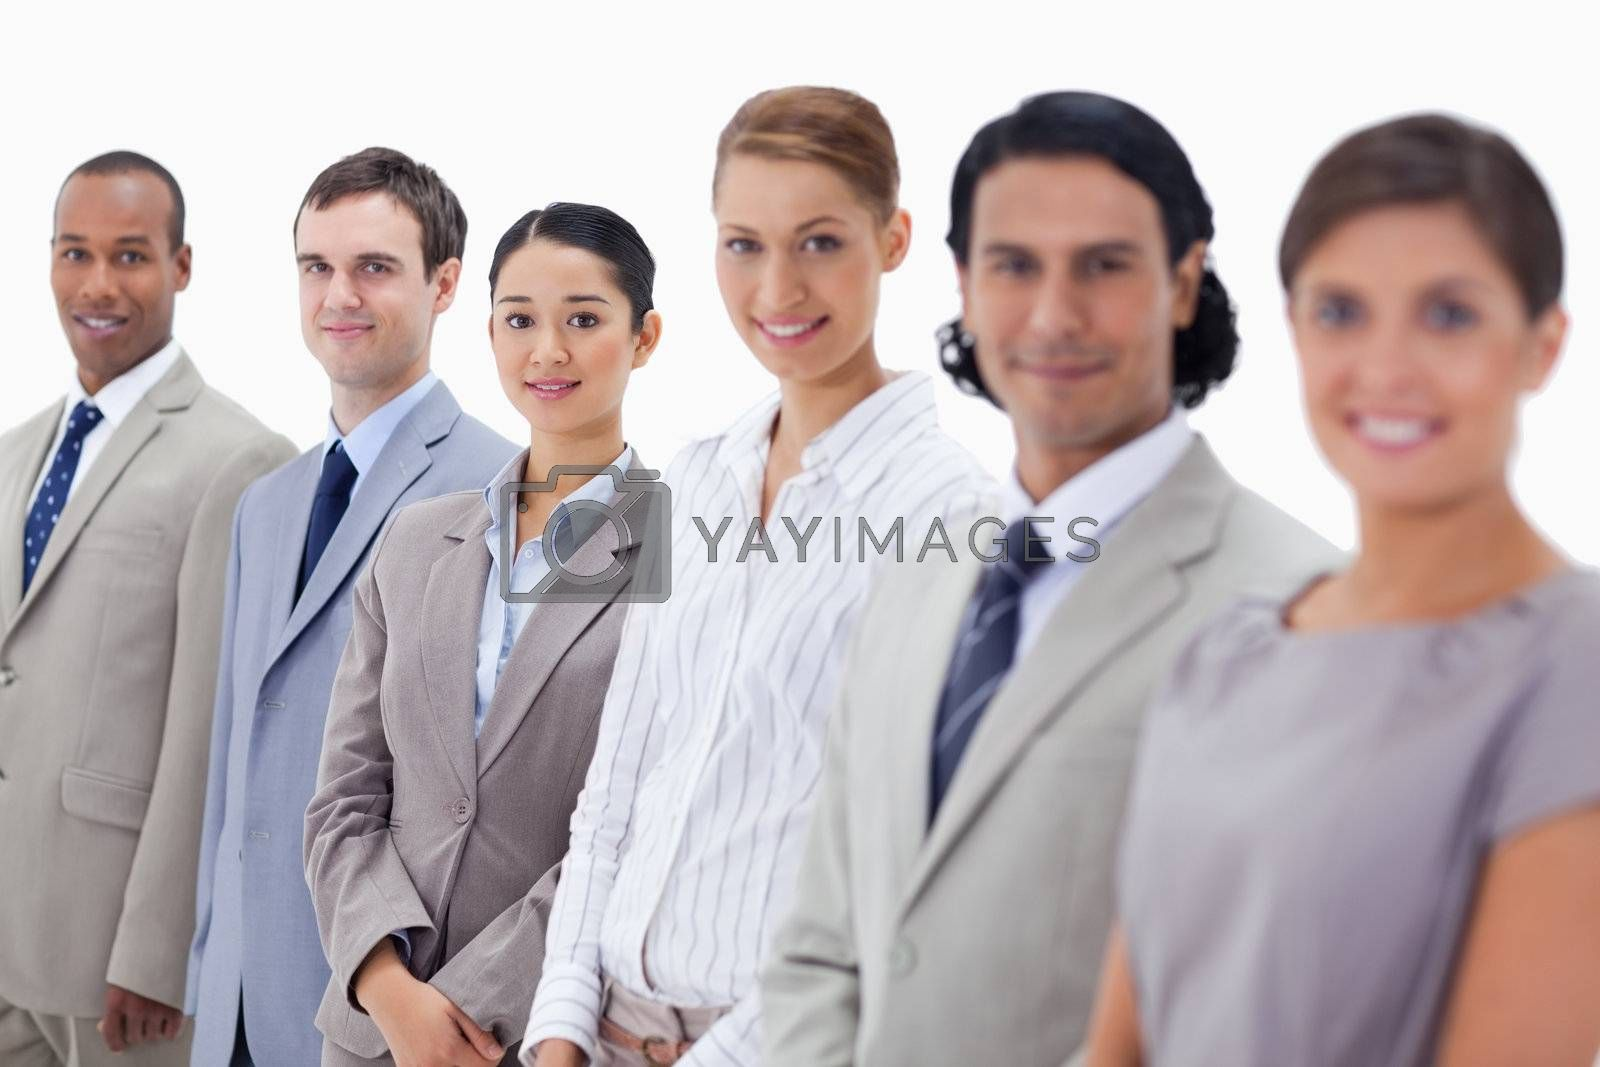 Close-up of smiling people dressed in suits looking straight with focus on the last three people